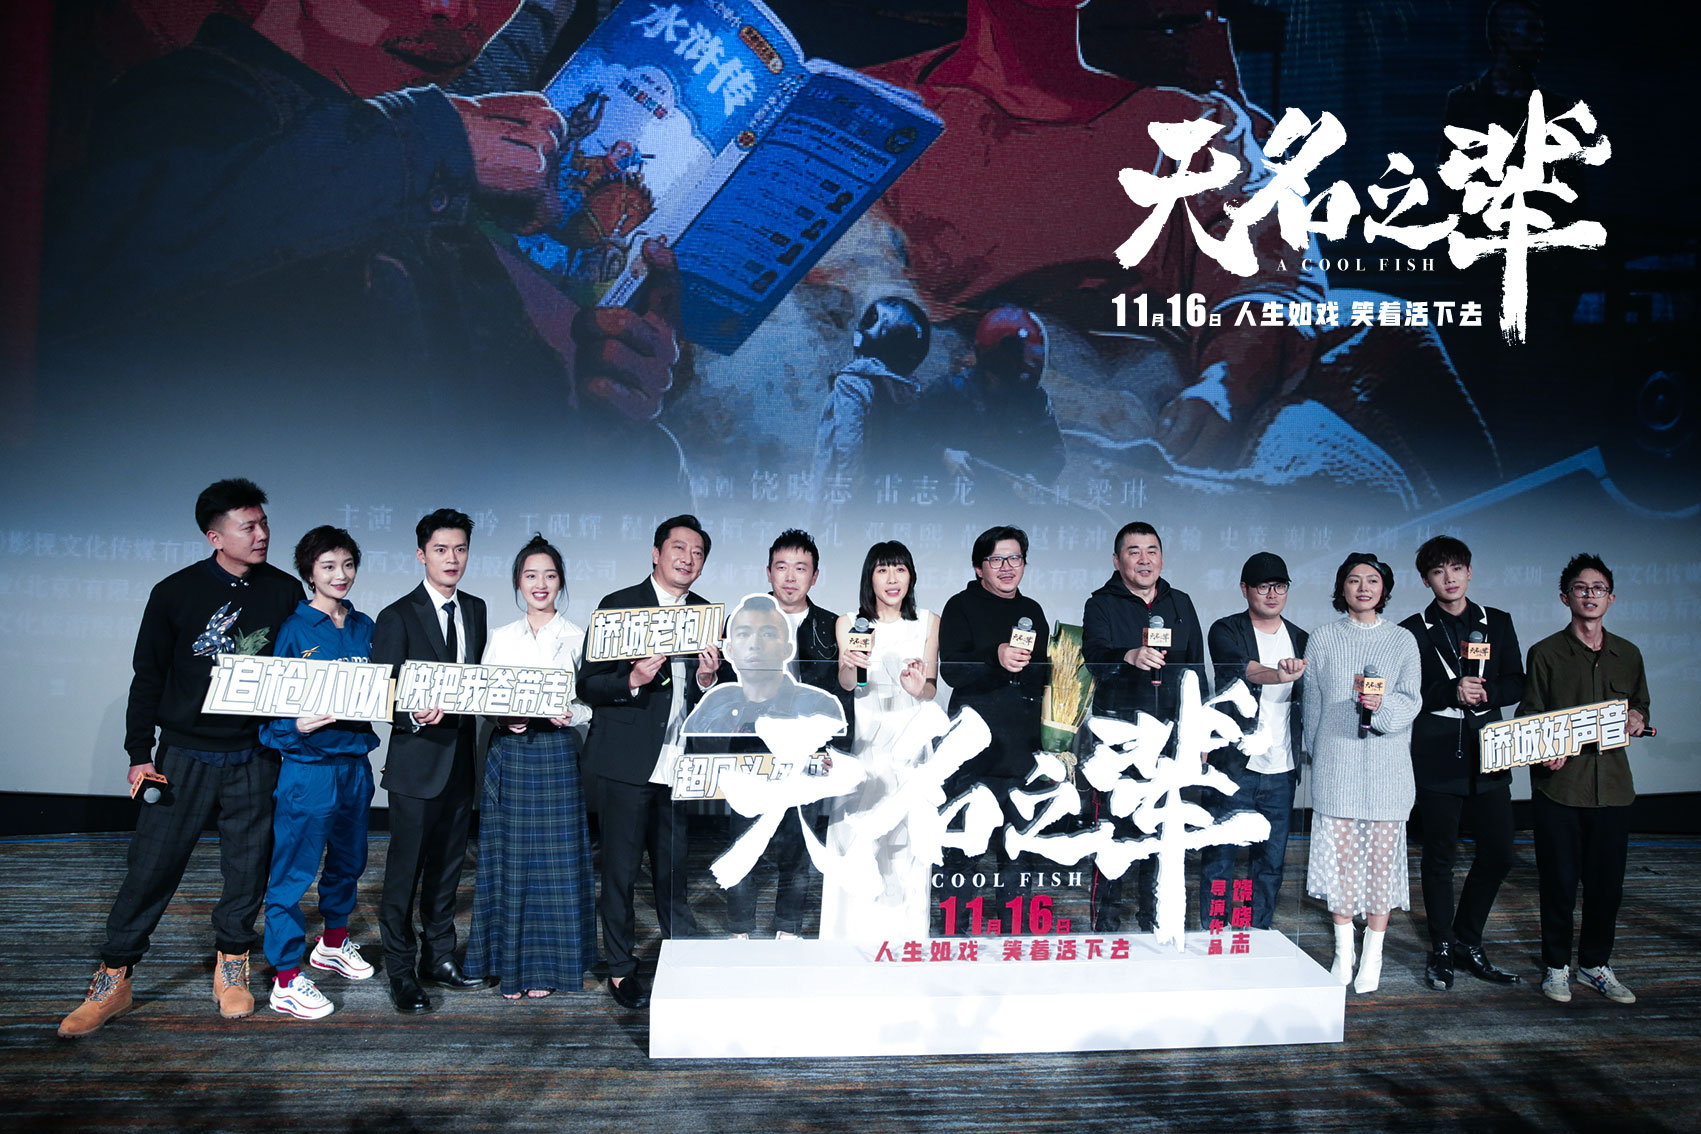 Nobody's name' premieres in beijing chen jianbin ren suxi launches' industry warm spring